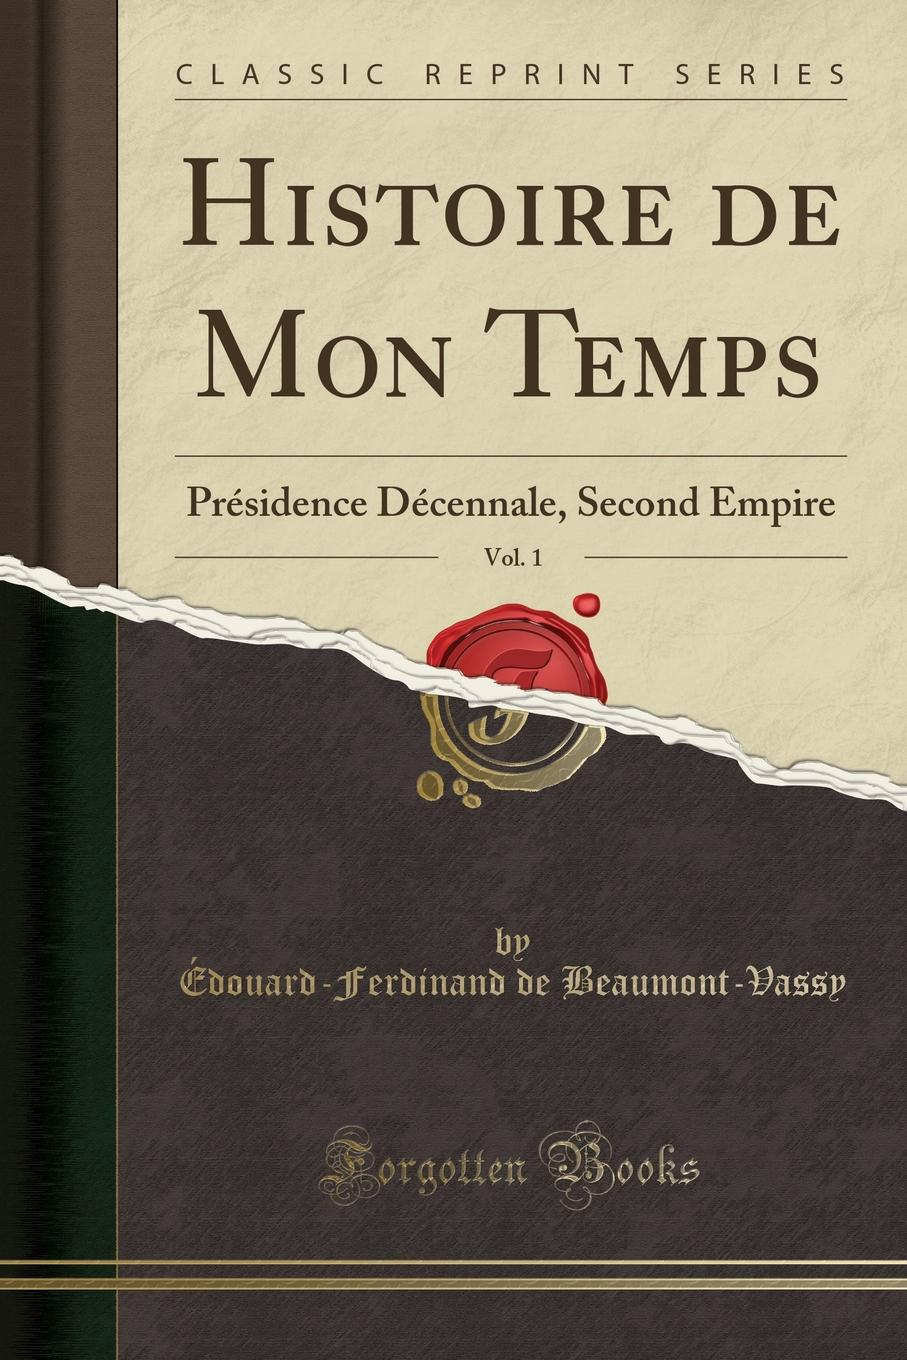 Édouard-Ferdinand de Beaumont-Vassy Histoire de Mon Temps, Vol. 1. Presidence Decennale, Second Empire (Classic Reprint) sully prudhomme prose 1883 l expression dans les beaux arts application de la psychologie a l etude de l artiste et des beaux arts french edition